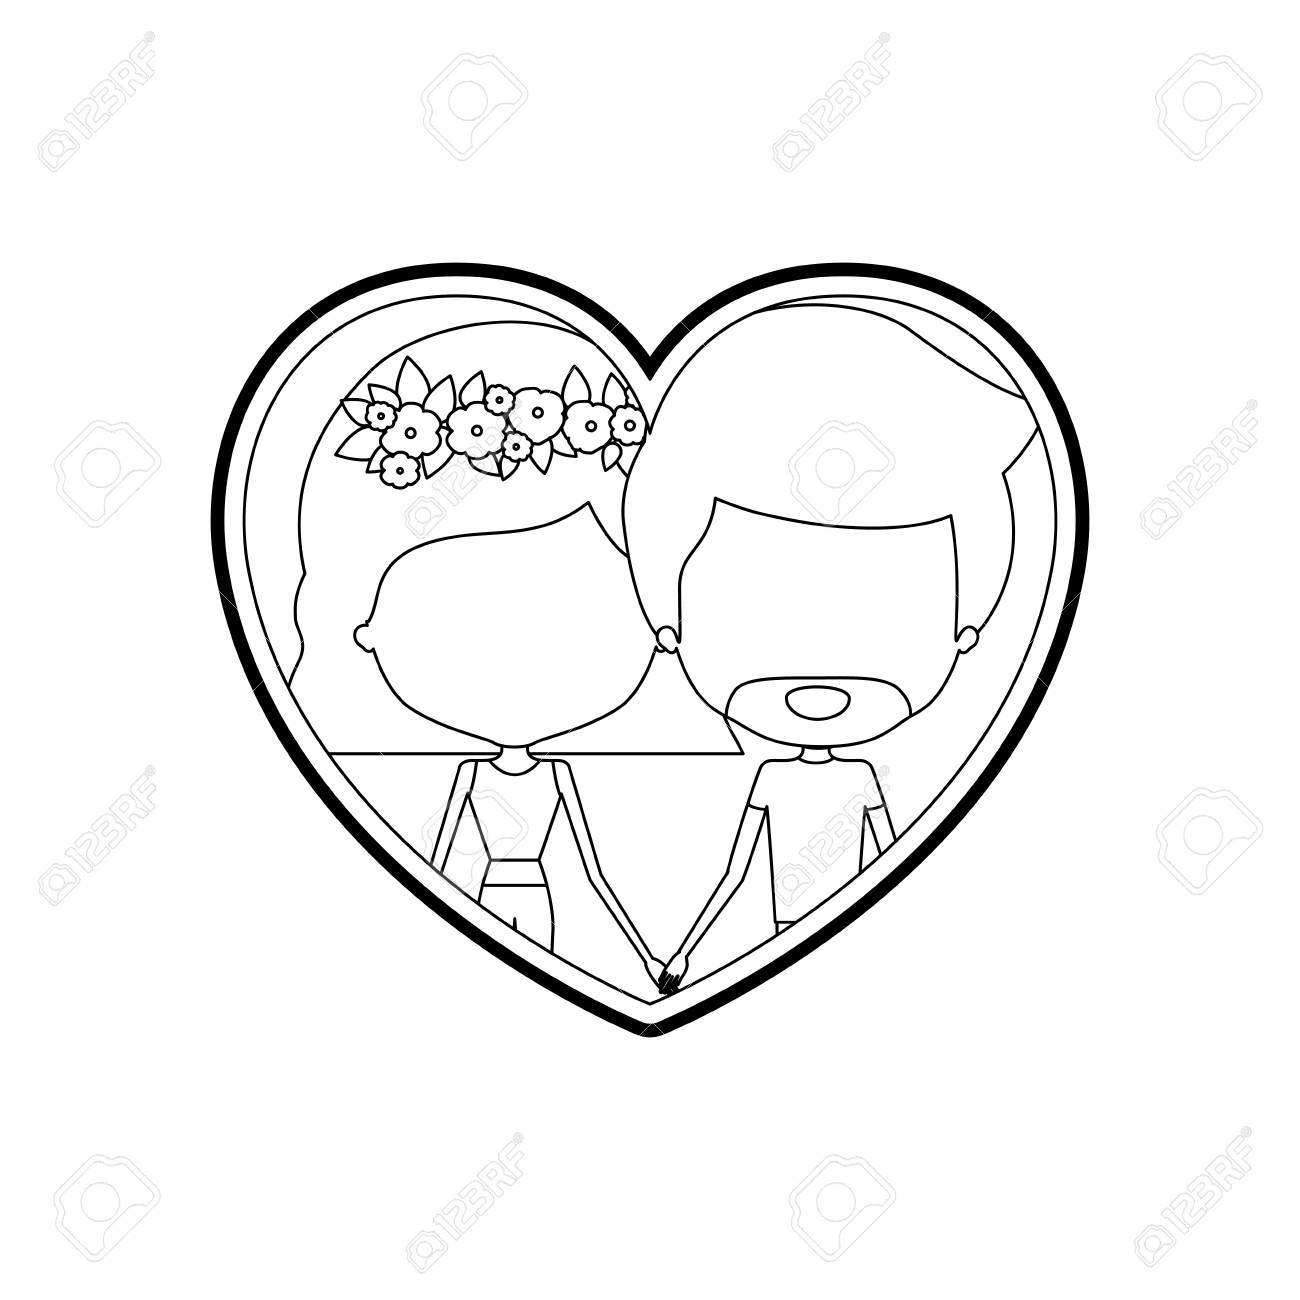 1300x1300 Sketch Silhouette Heart Shape With Caricature Faceless Couple Man